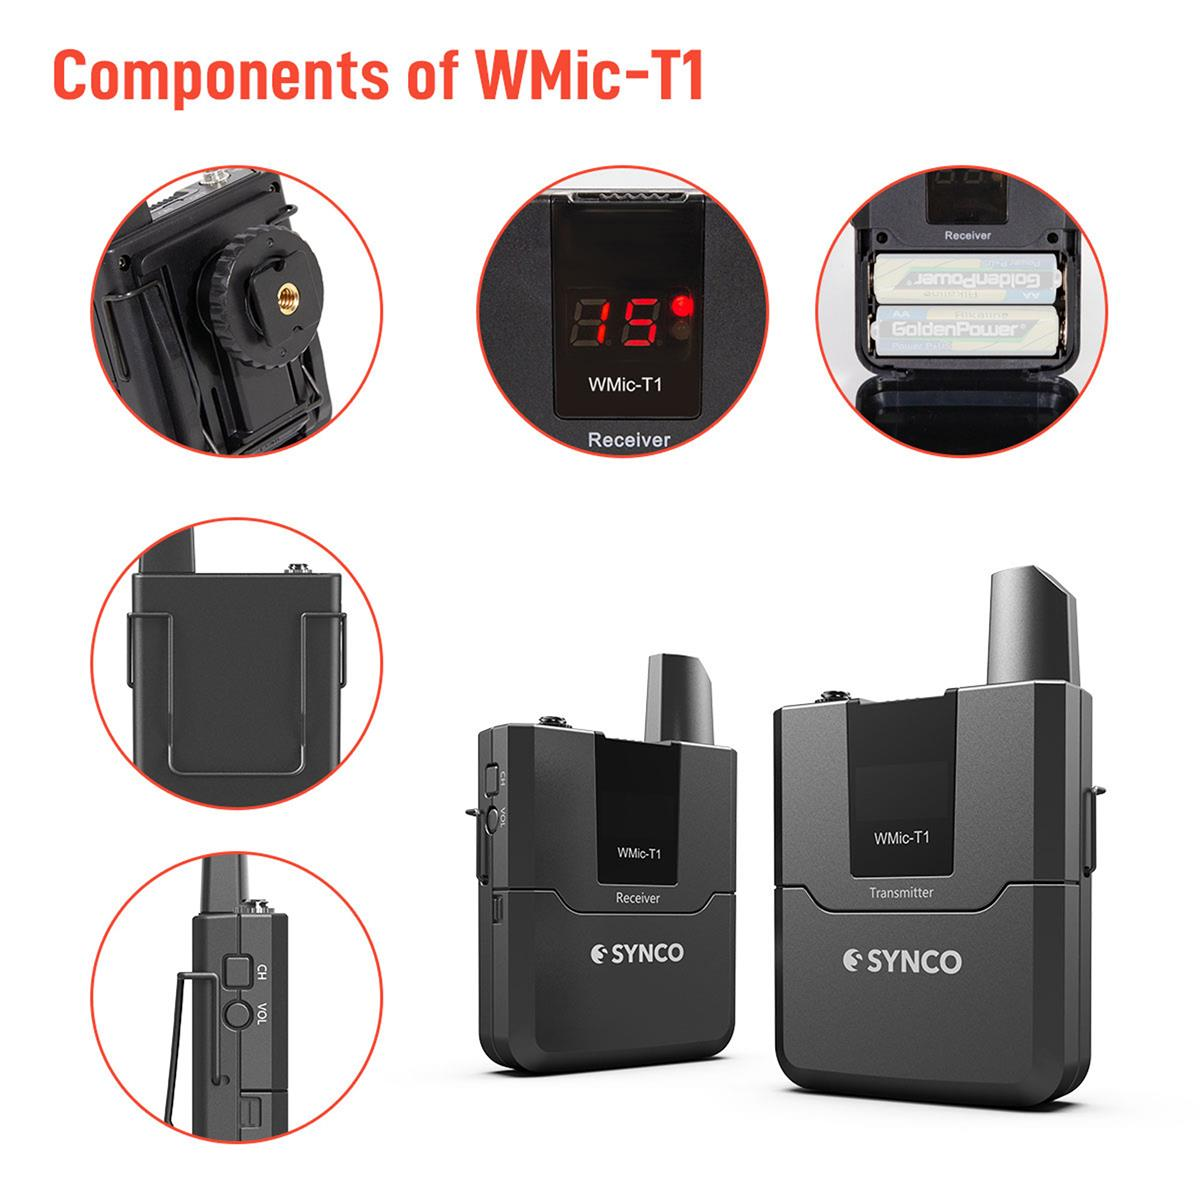 Synco Audio WMic-T1: Picture 13